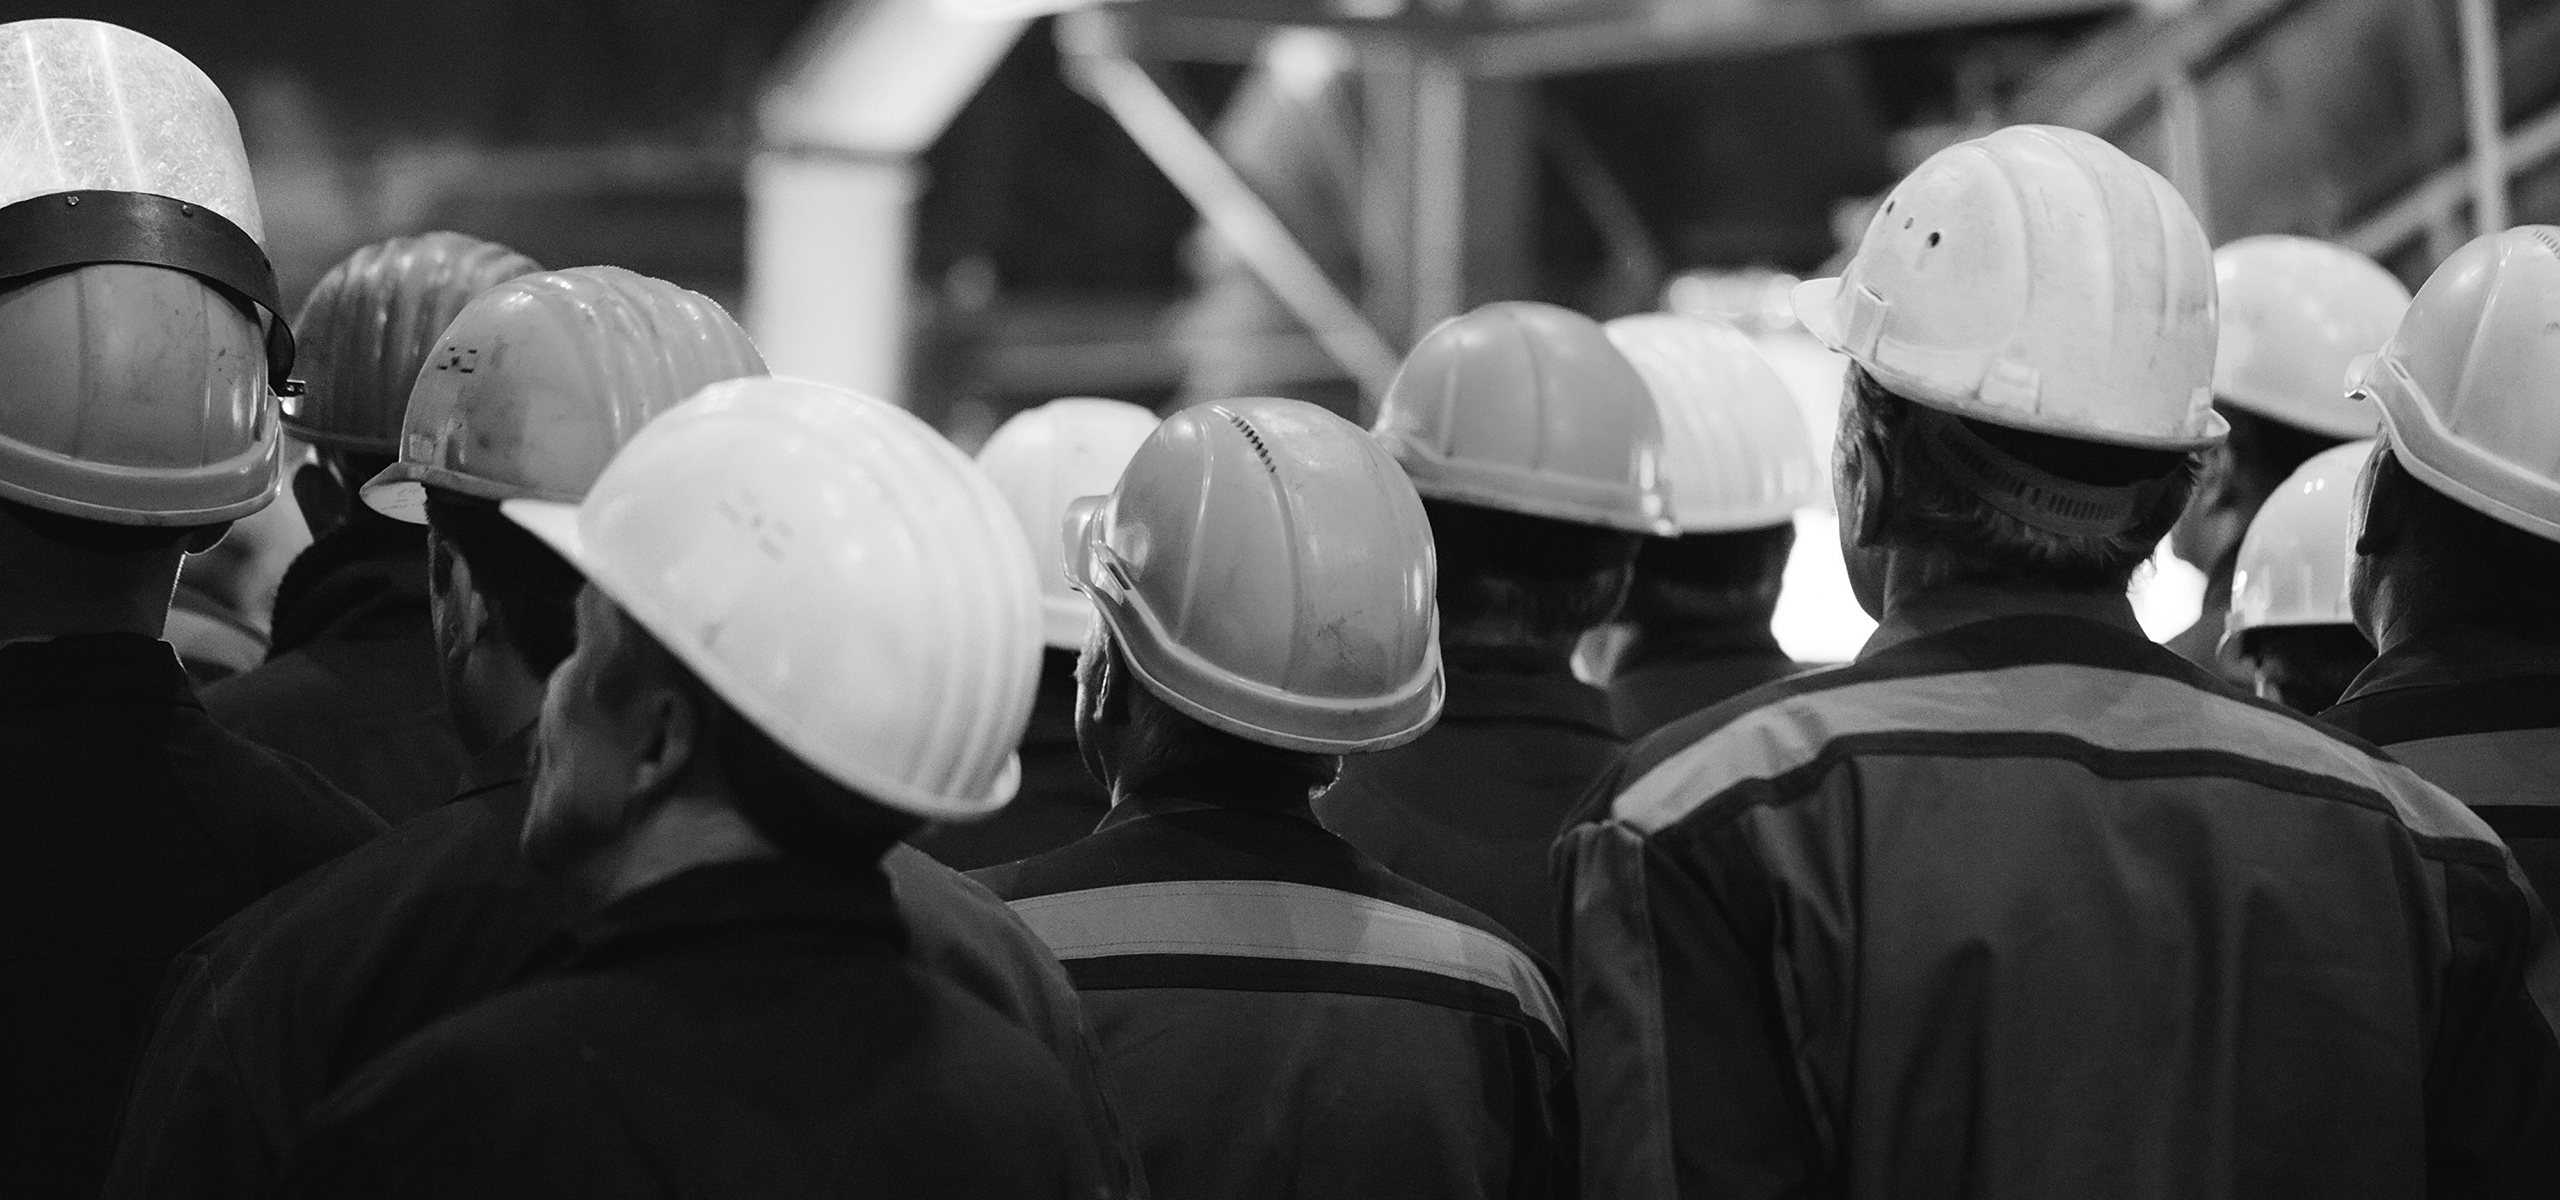 Image of a group of workers in hard hats.